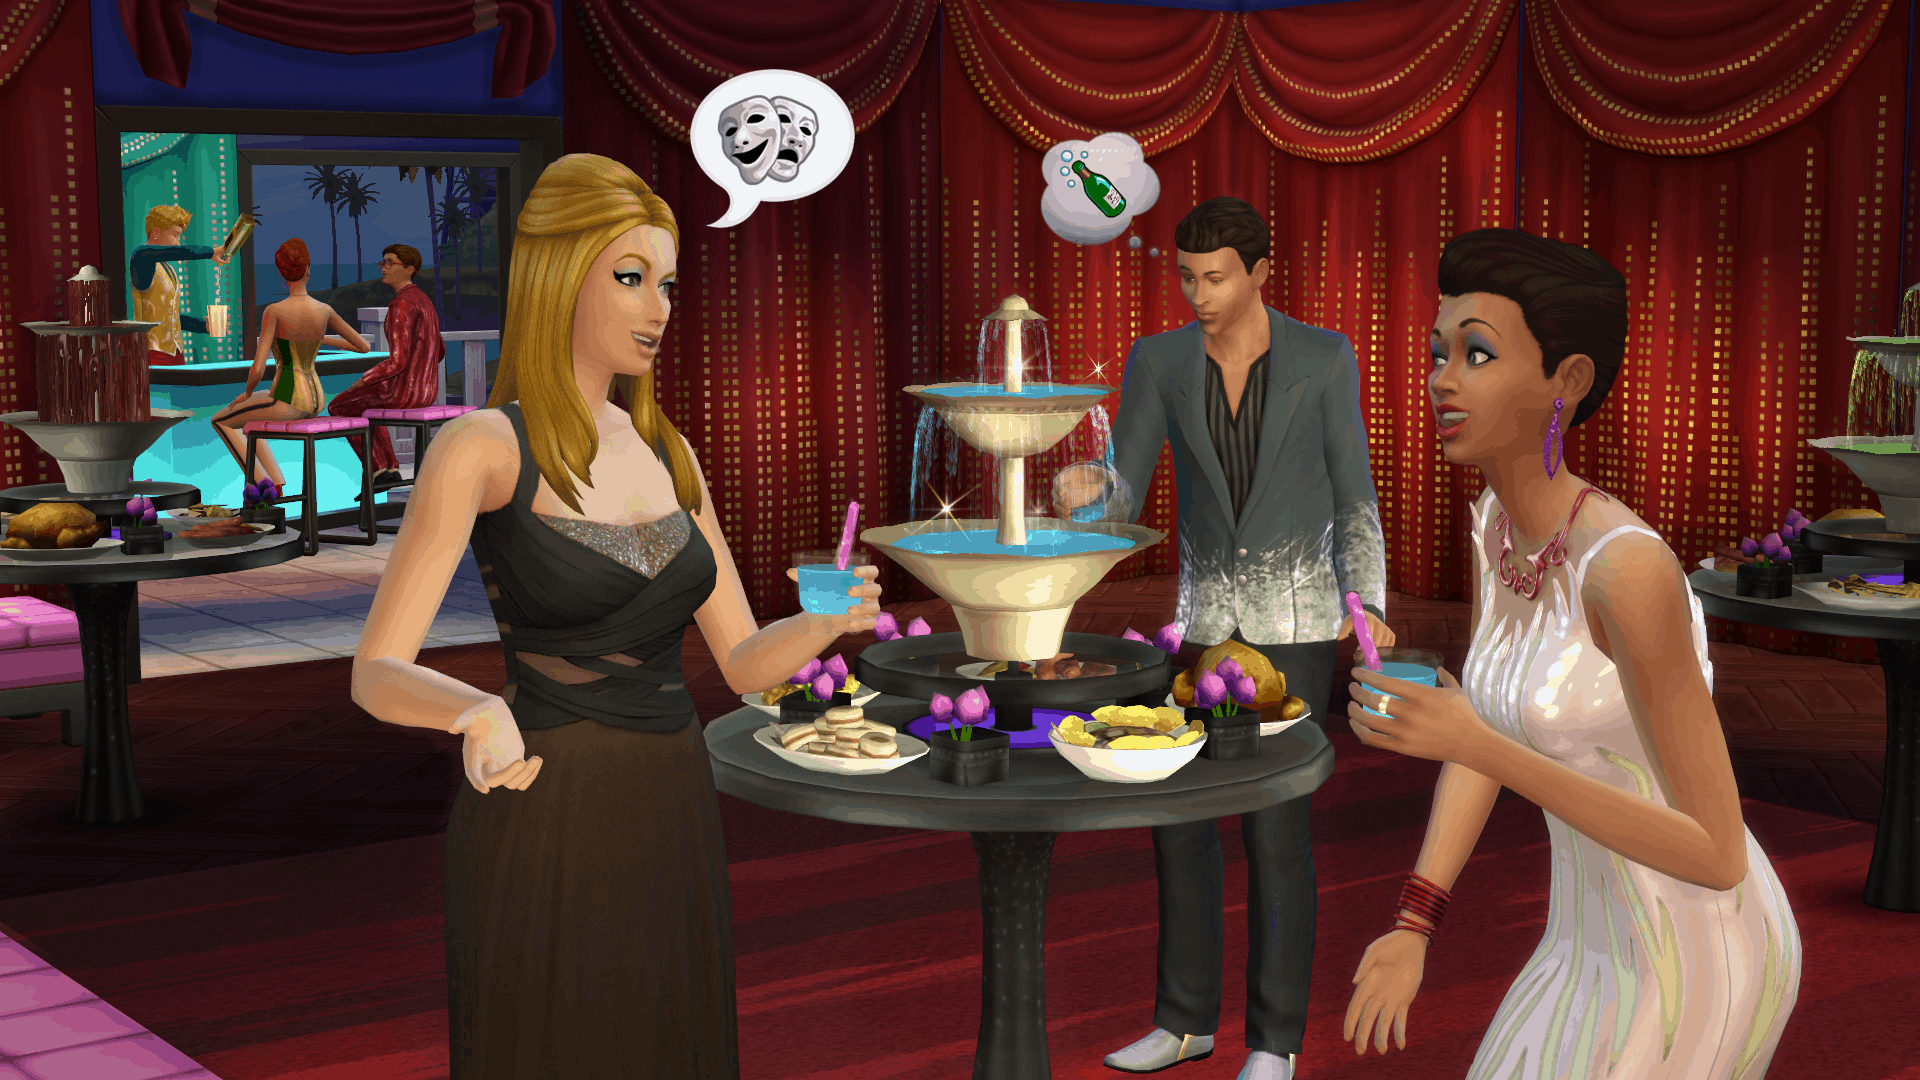 The Sims – important video game